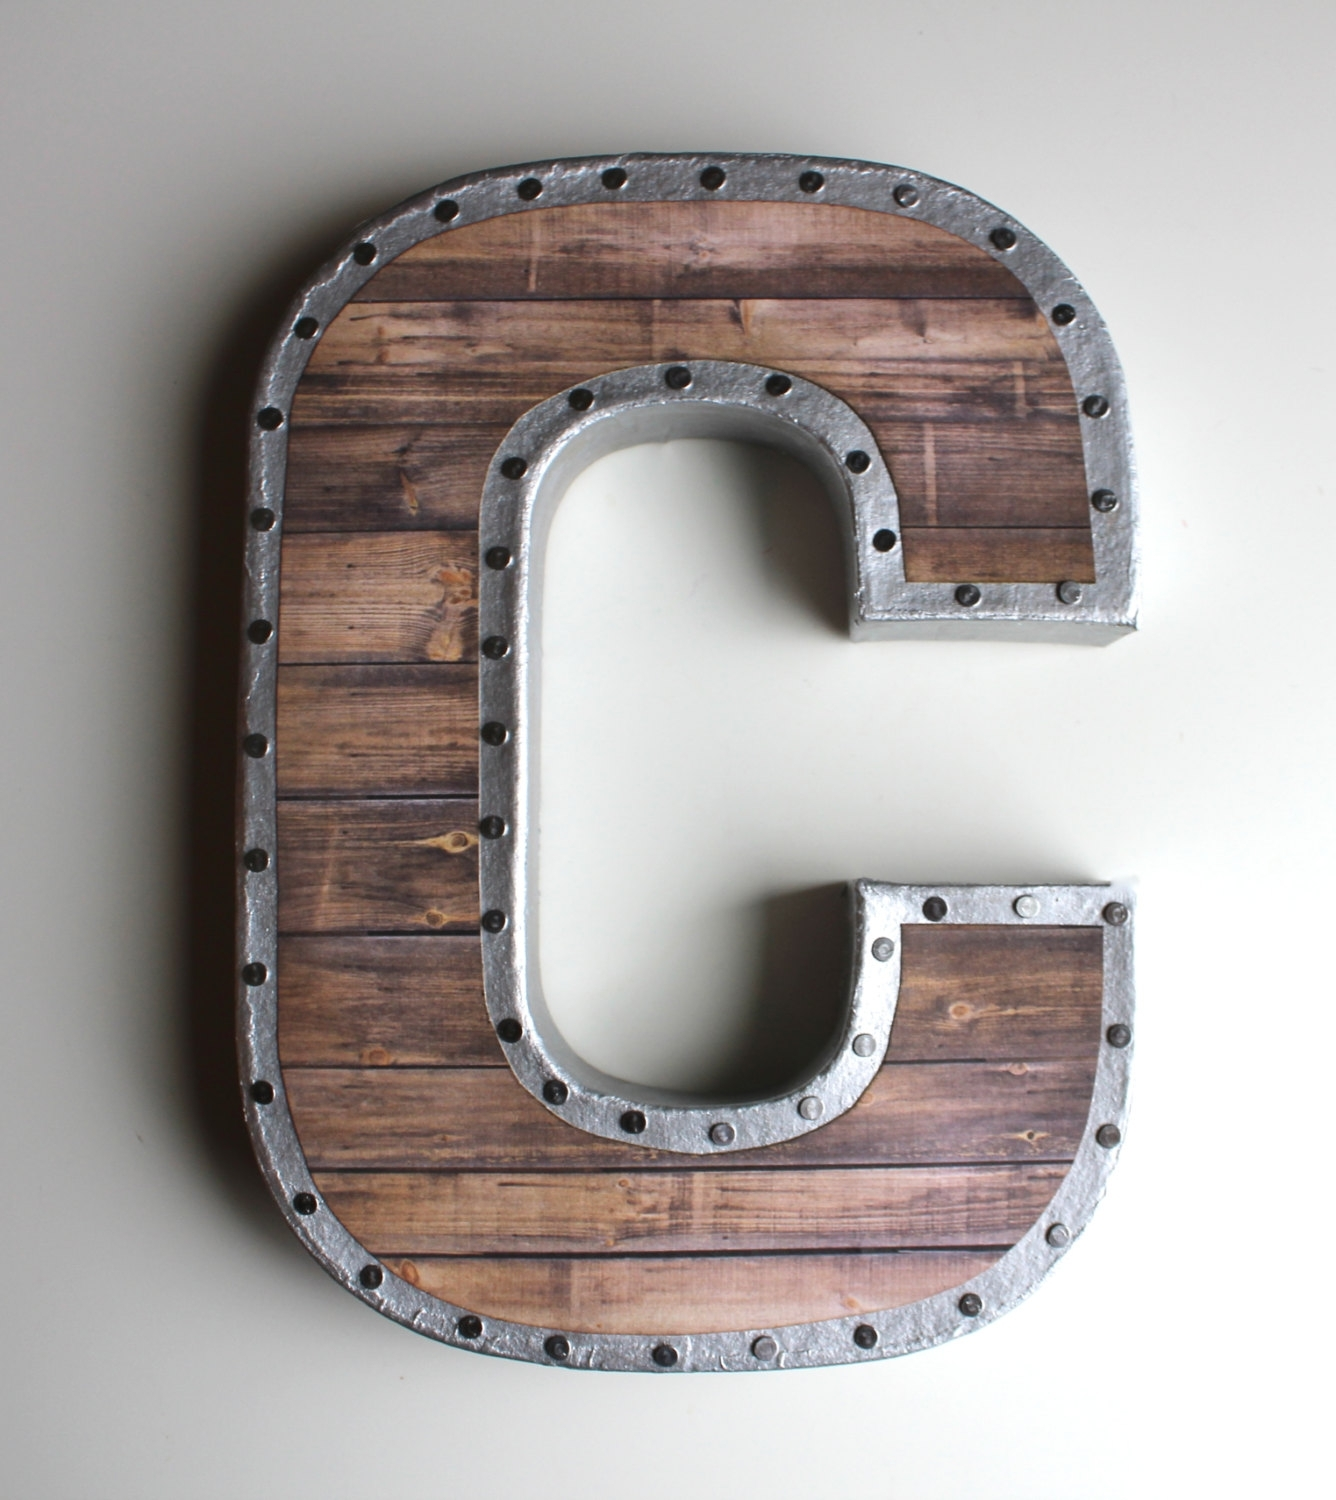 Vintage Metal Letters For The Wall – Blogtipsworld Intended For Most Recently Released Metal Letter Wall Art (View 18 of 20)